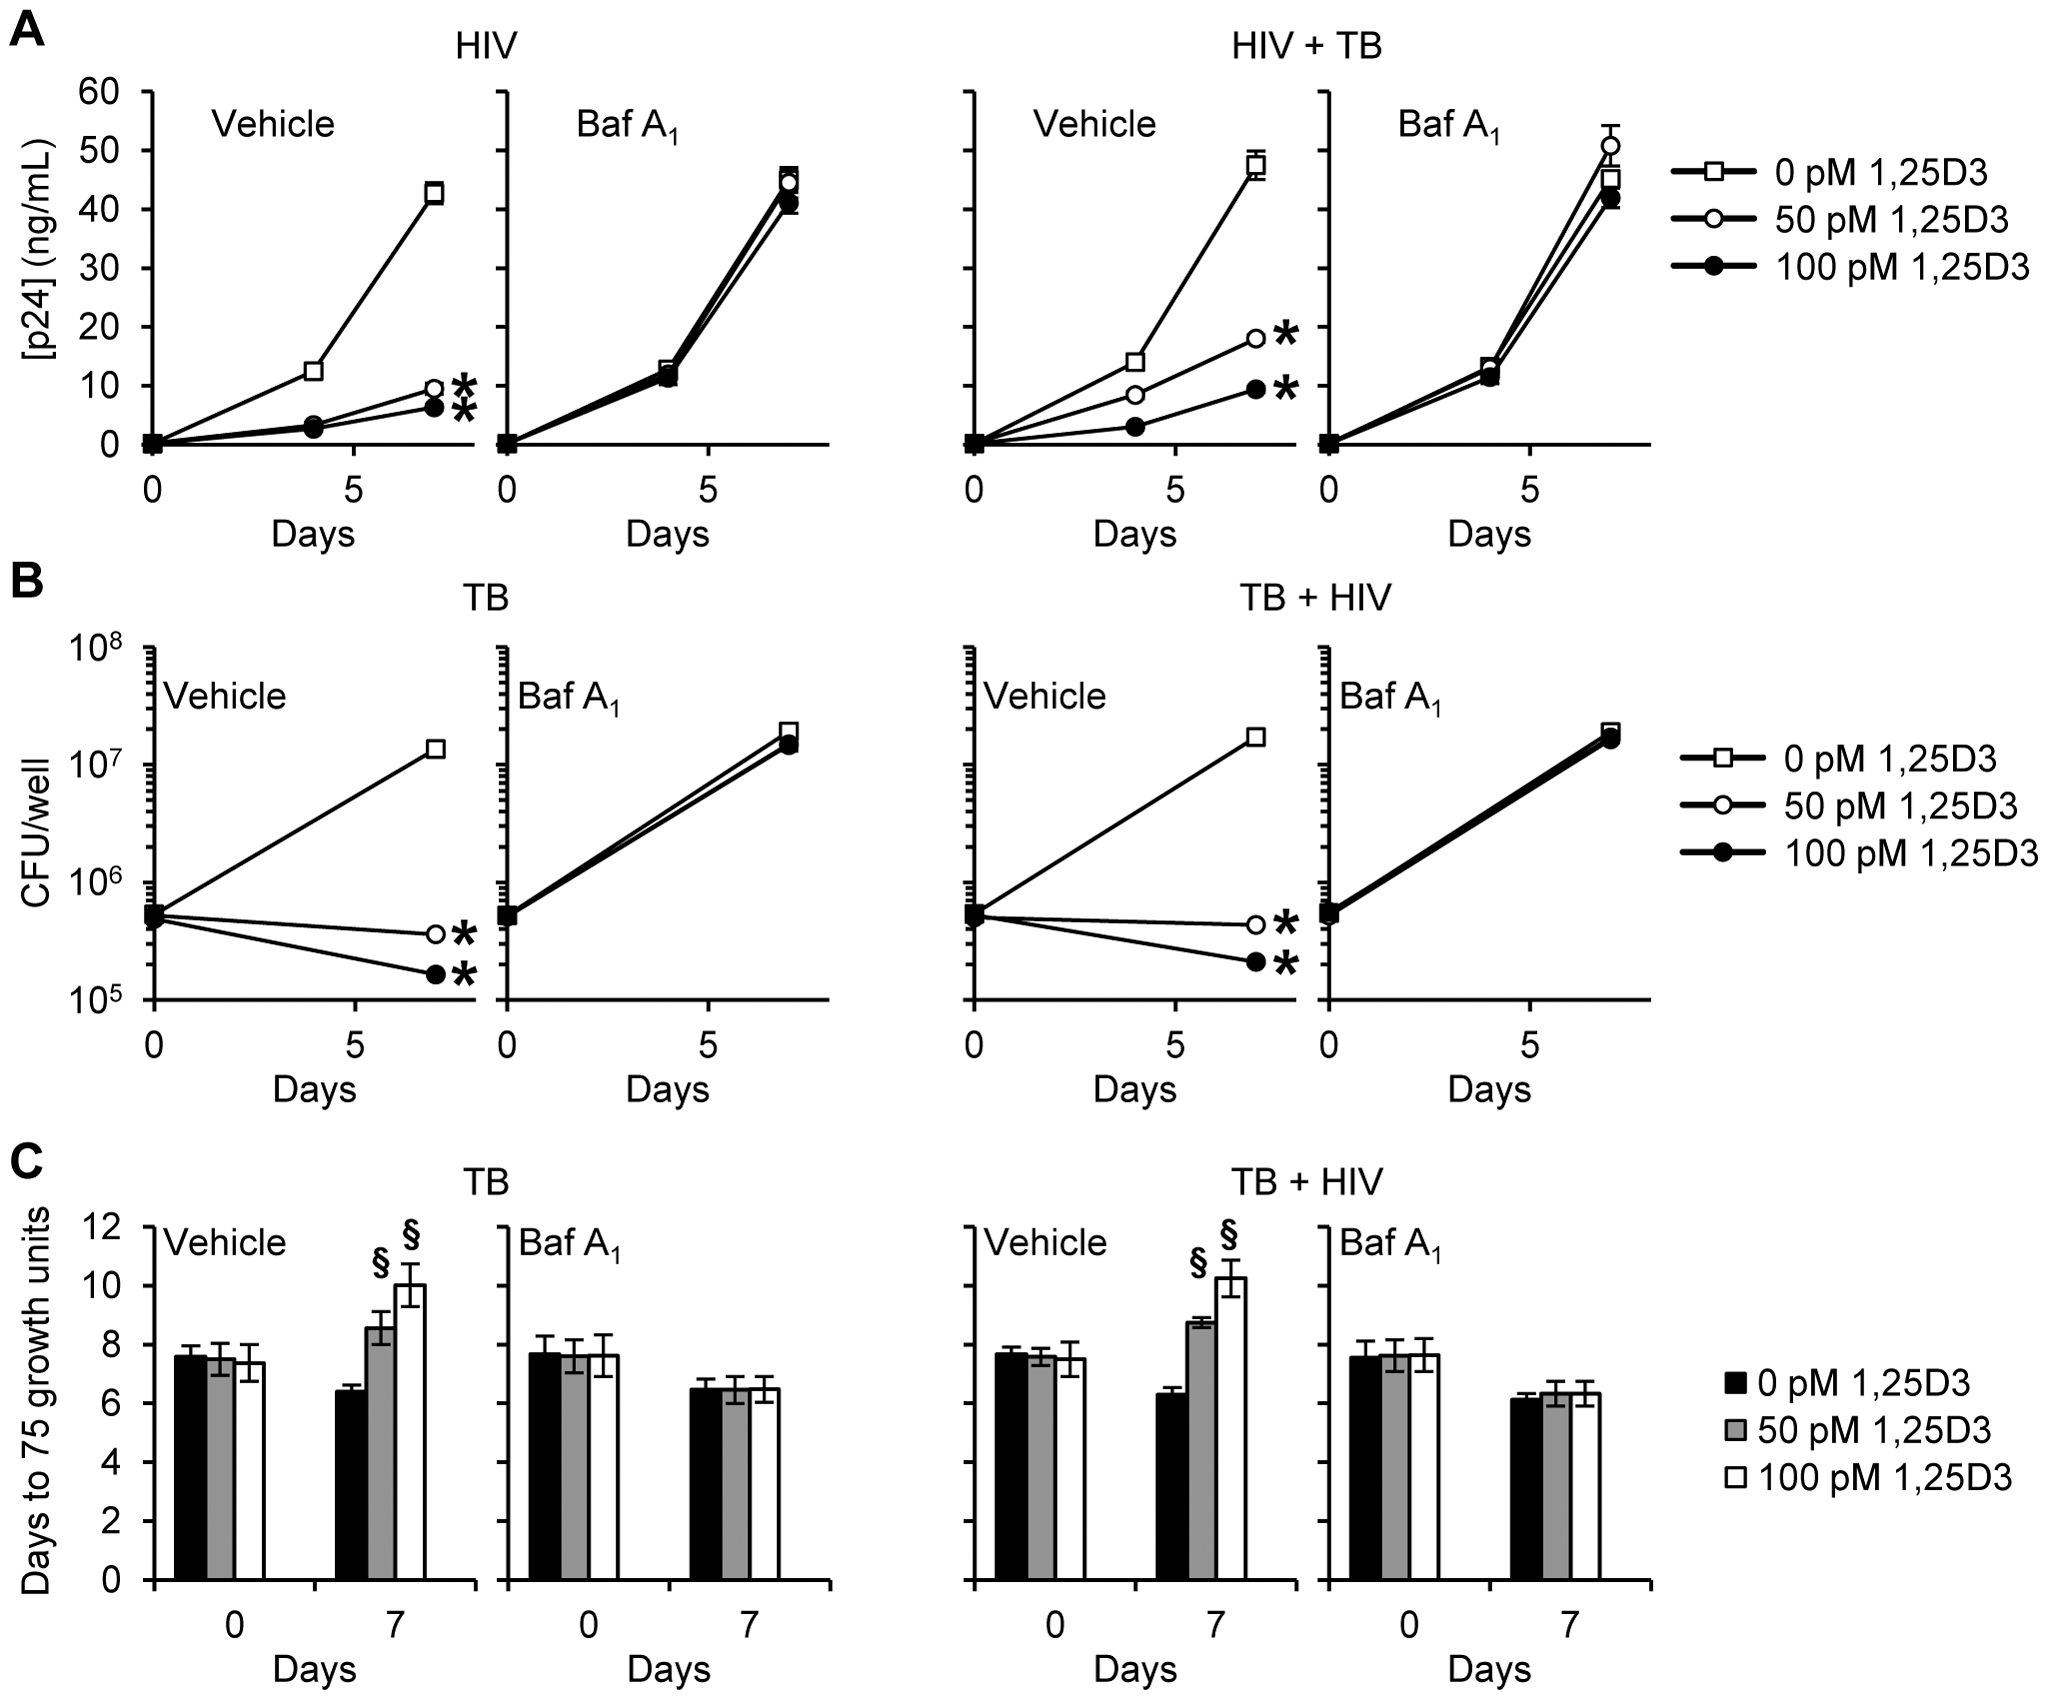 Bafilomycin A<sub>1</sub> inhibits the 1,25D3 mediated inhibition of HIV and <i>M. tuberculosis</i> replication.